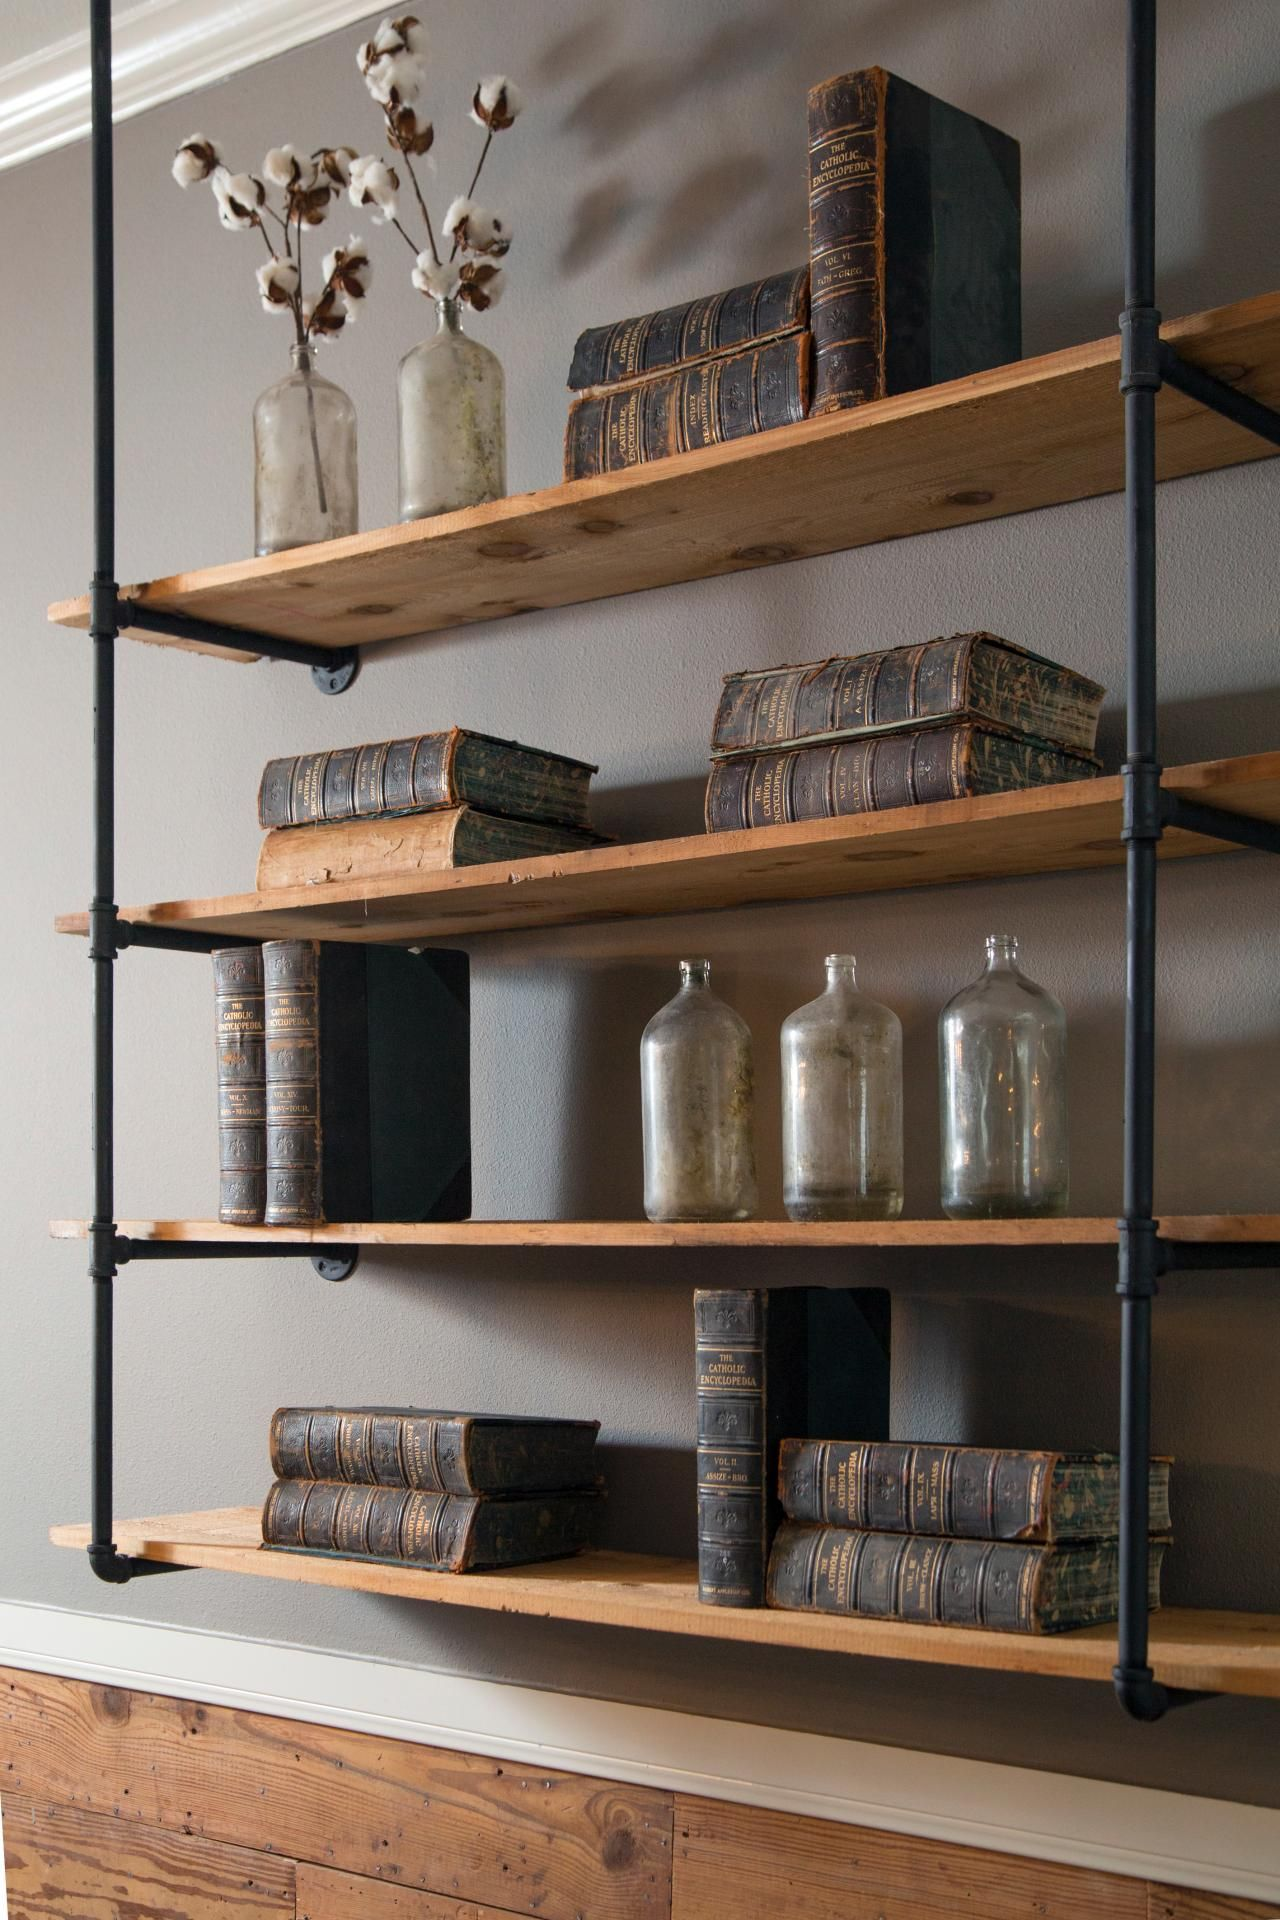 Rustic Kitchen Shelving Decorating With Shiplap Ideas From Hgtvs Fixer Upper